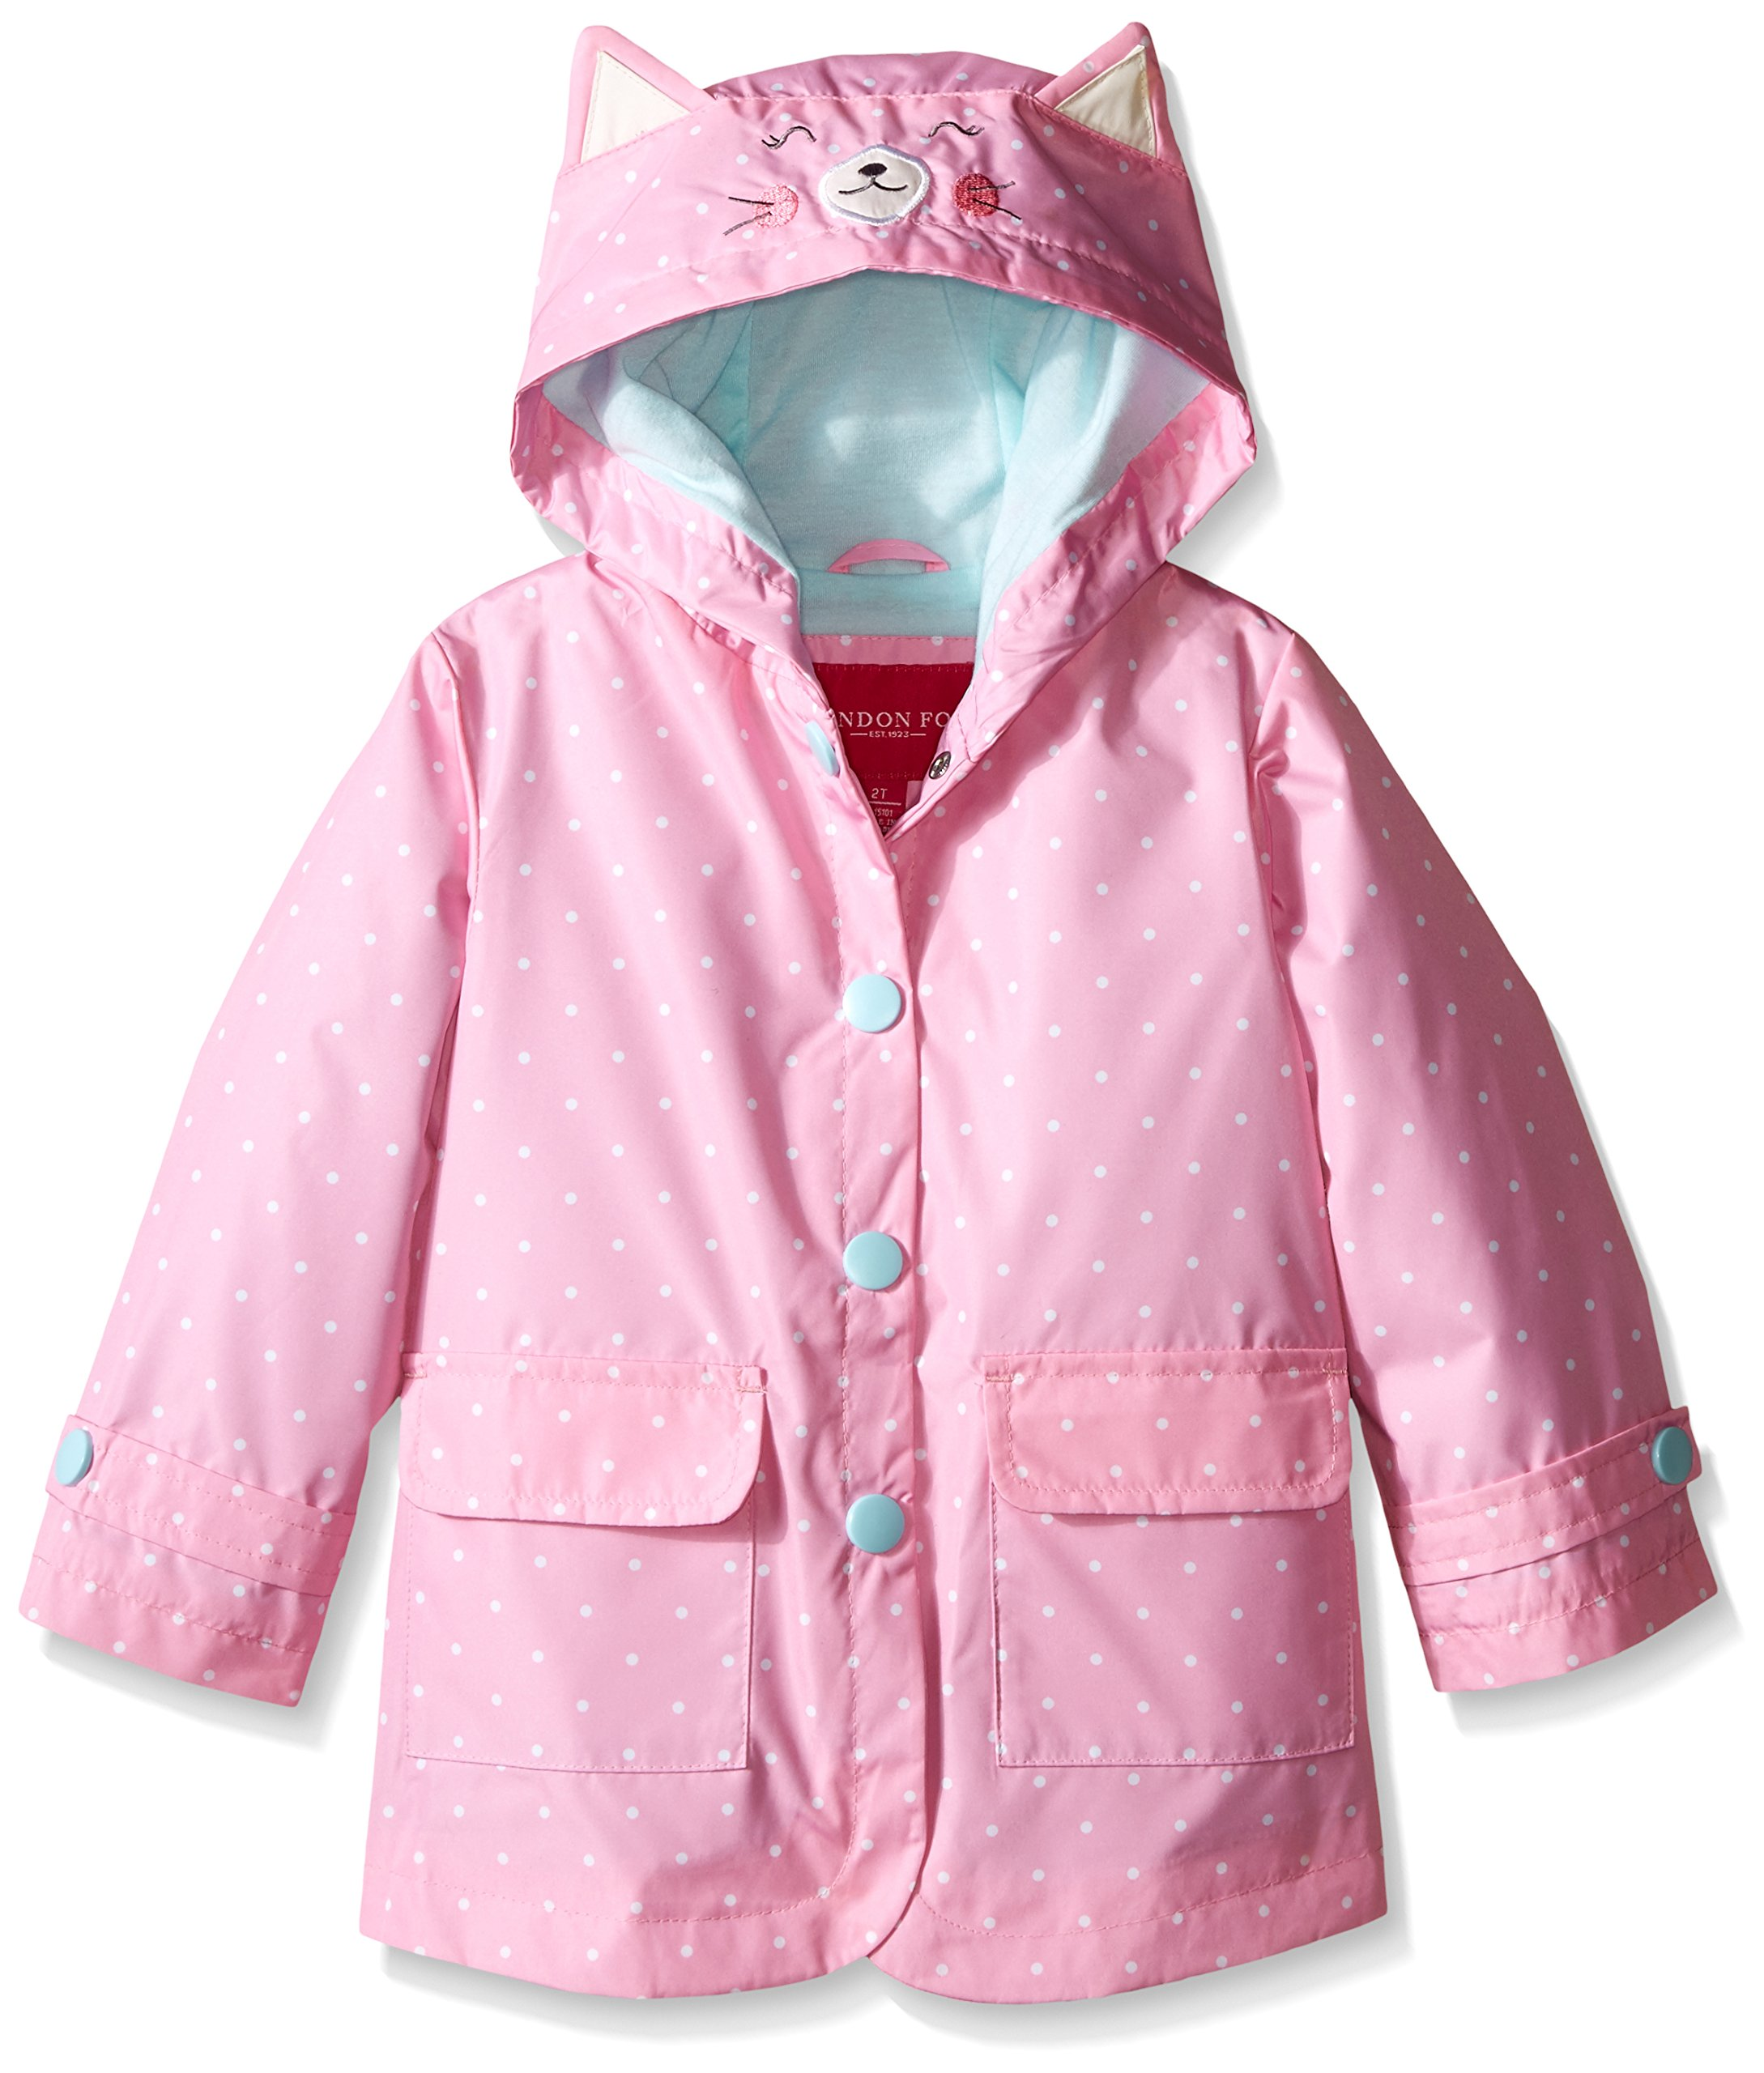 London Fog Little Girls Enhanced Radiance Kitty Cat Rain Slicker, Dot Print, 6X by London Fog